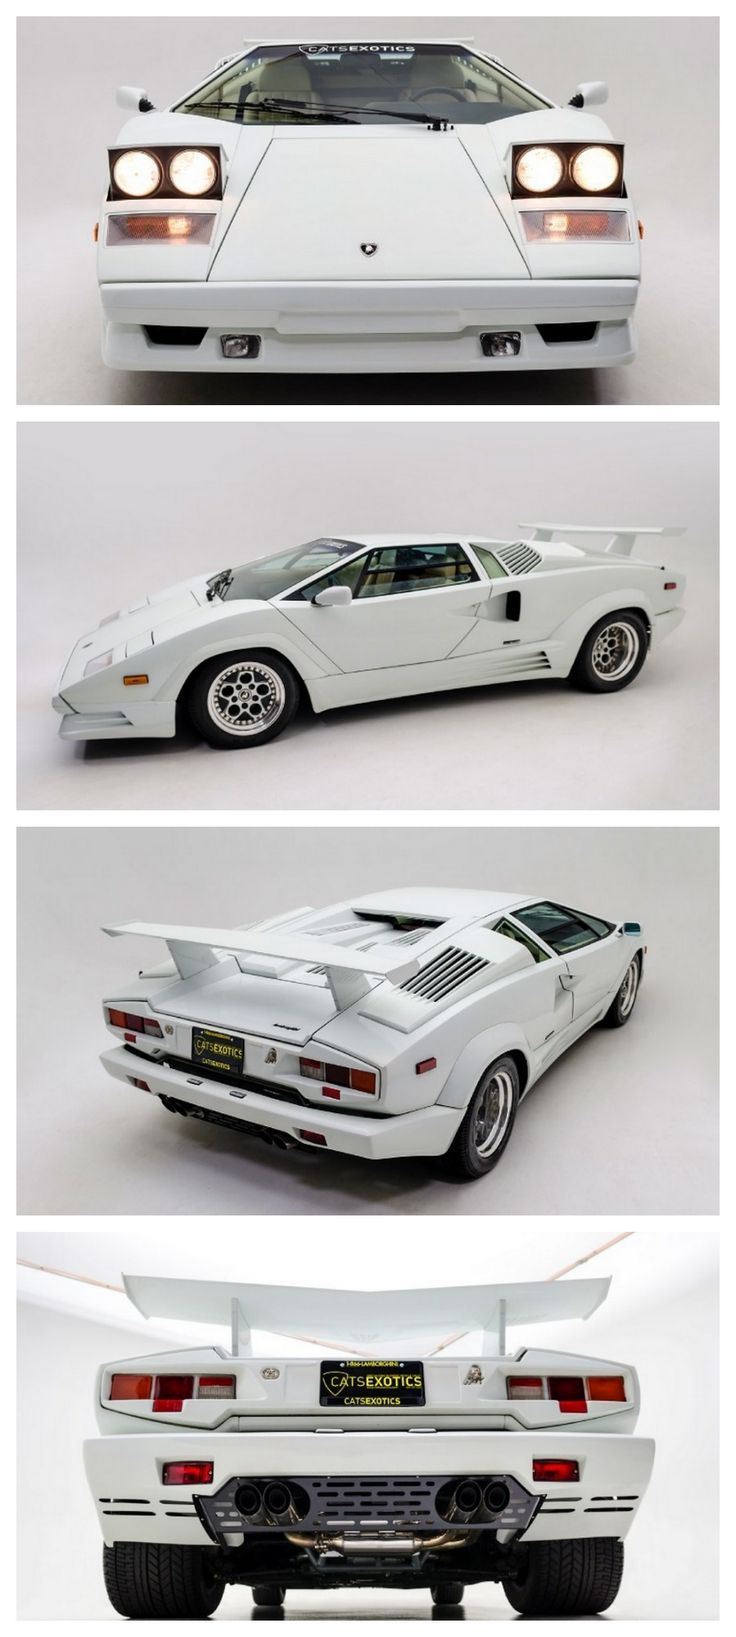 Rare 25th Anniversary Edition Countach Fuel Injected #AutoAwesome